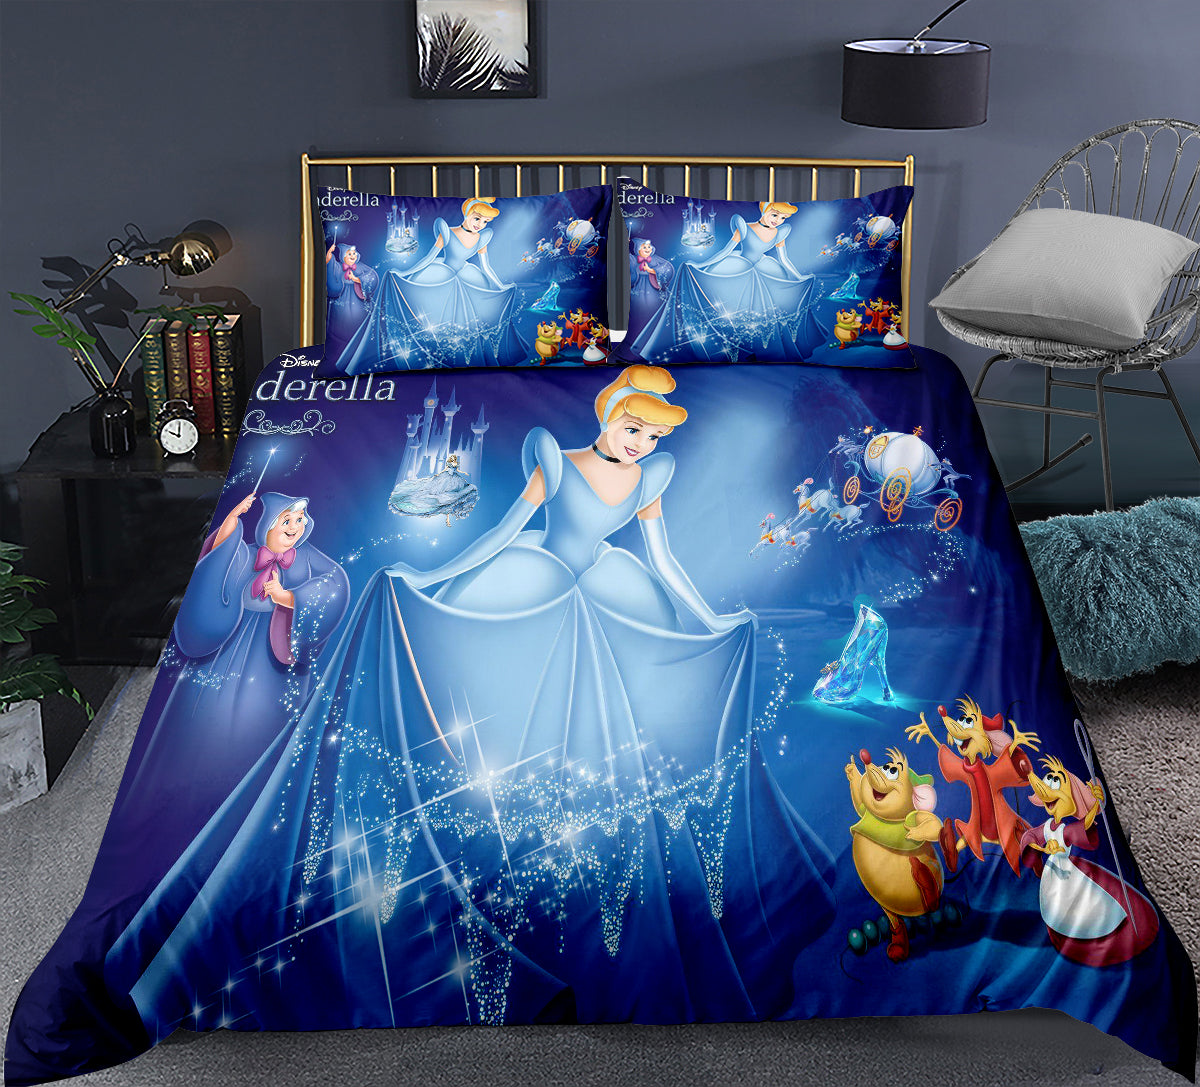 2021 New Cheap Bedding Sets Cinderella 3D Printed 3PCS Duvet Cover Sets Cotton Blend Comforter Cover Sets Twin&Full&Queen&King&California King 4 Colors Blue